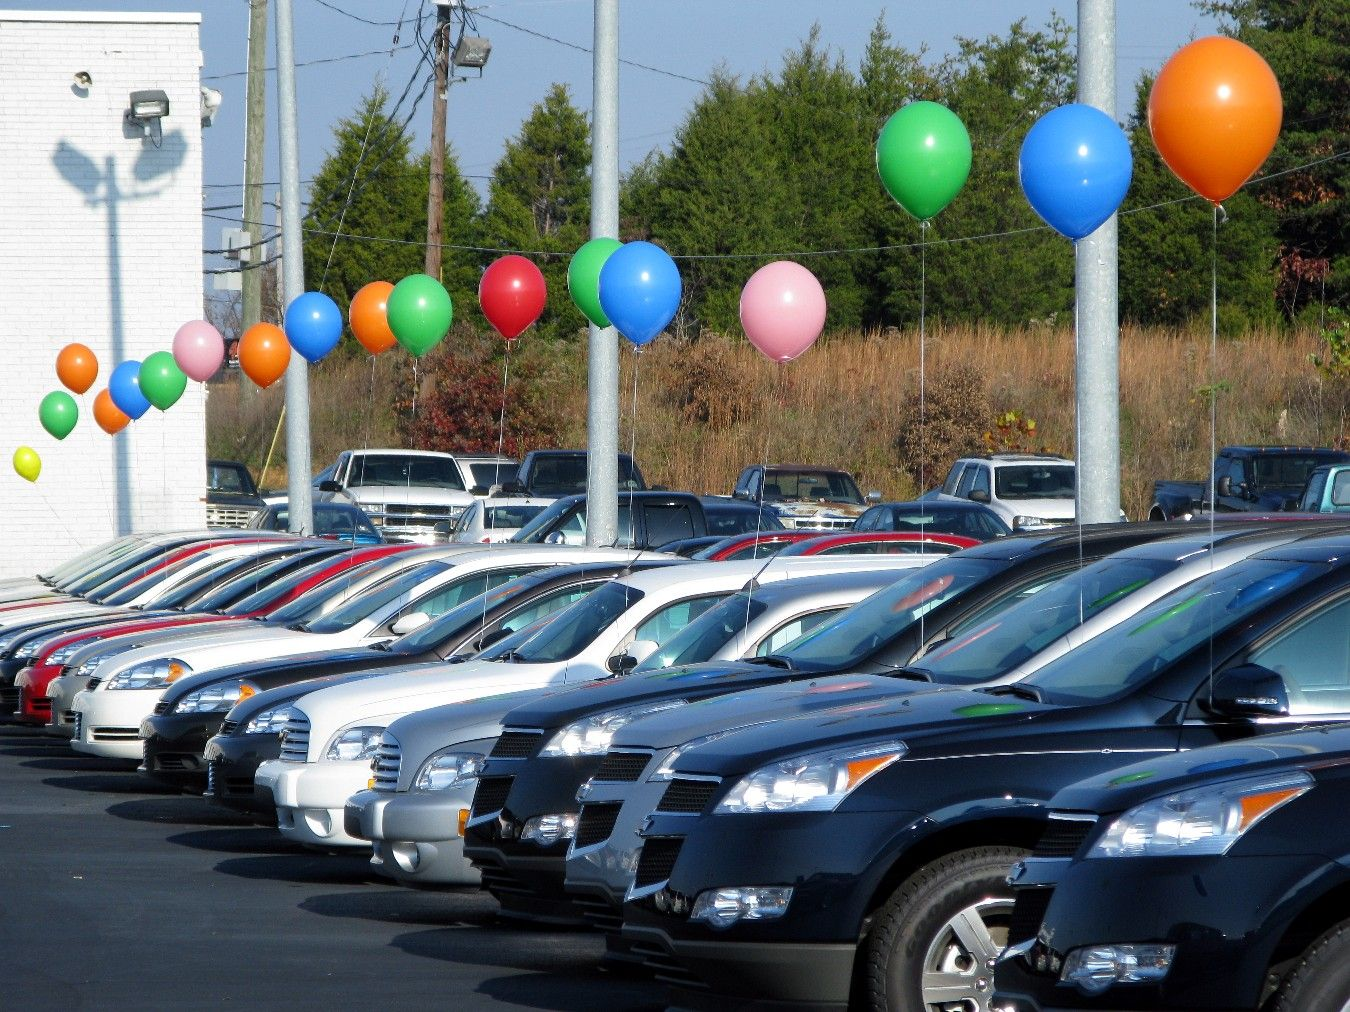 Best Used Cars Under 10,000 Unboxing Deals Car loans